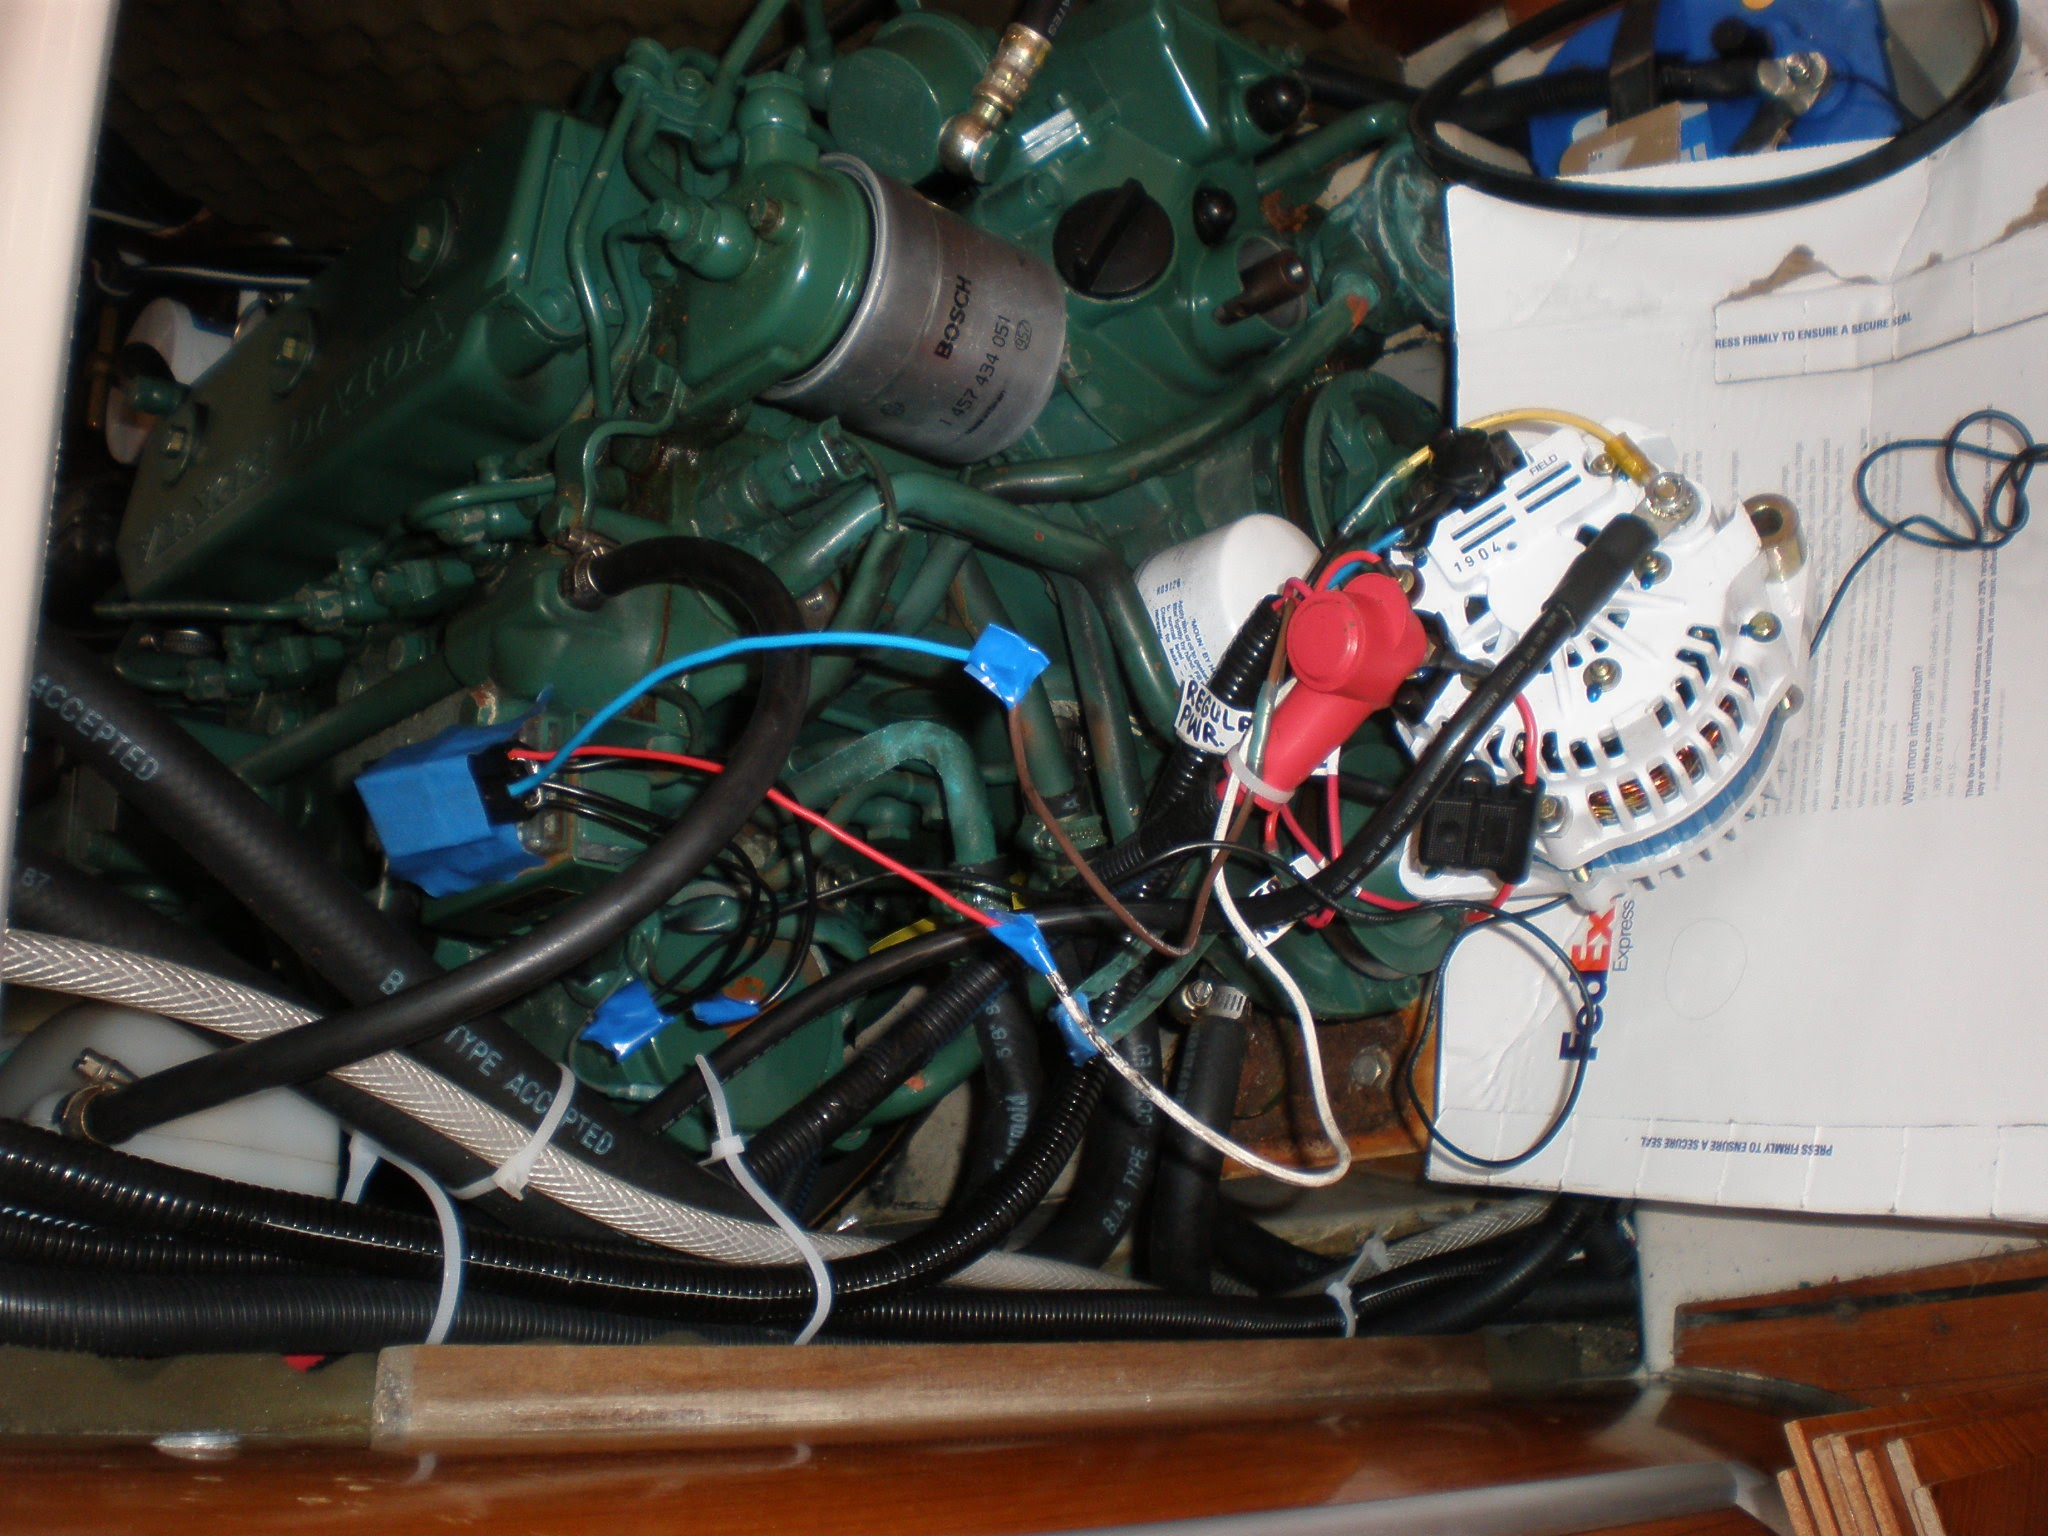 boat projects gybethejib wiring up the new balmar alternator